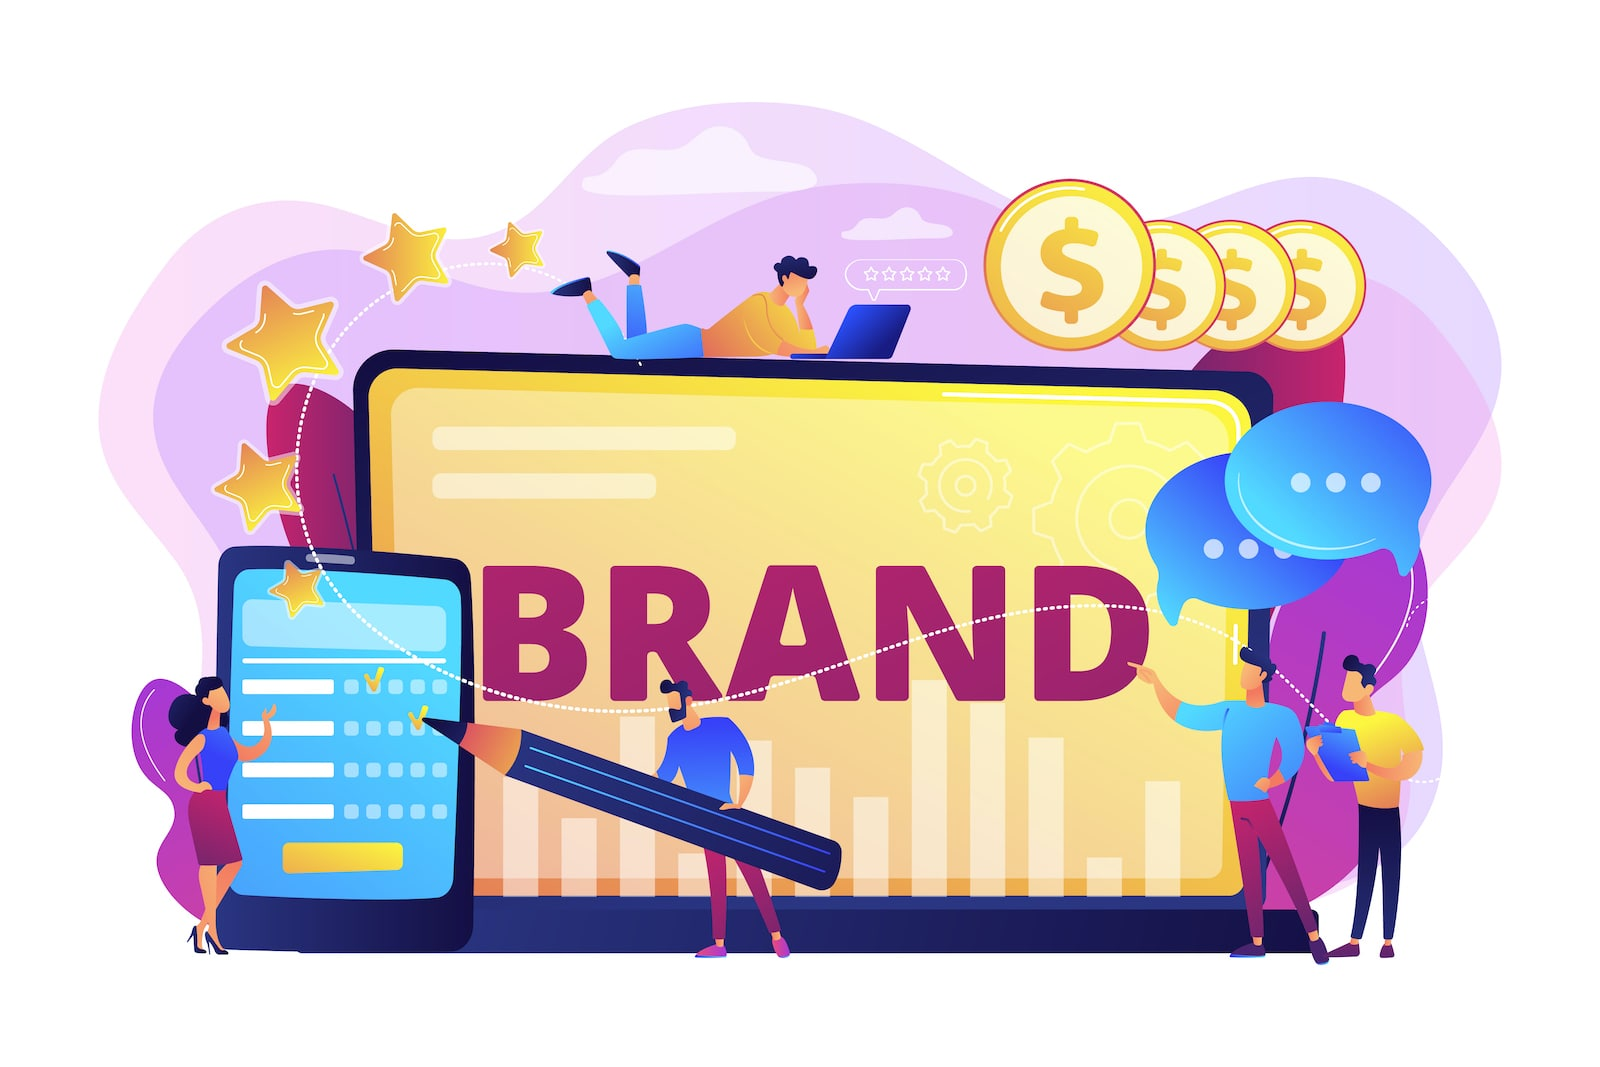 6 Essential Elements of a Powerful Brand Identity